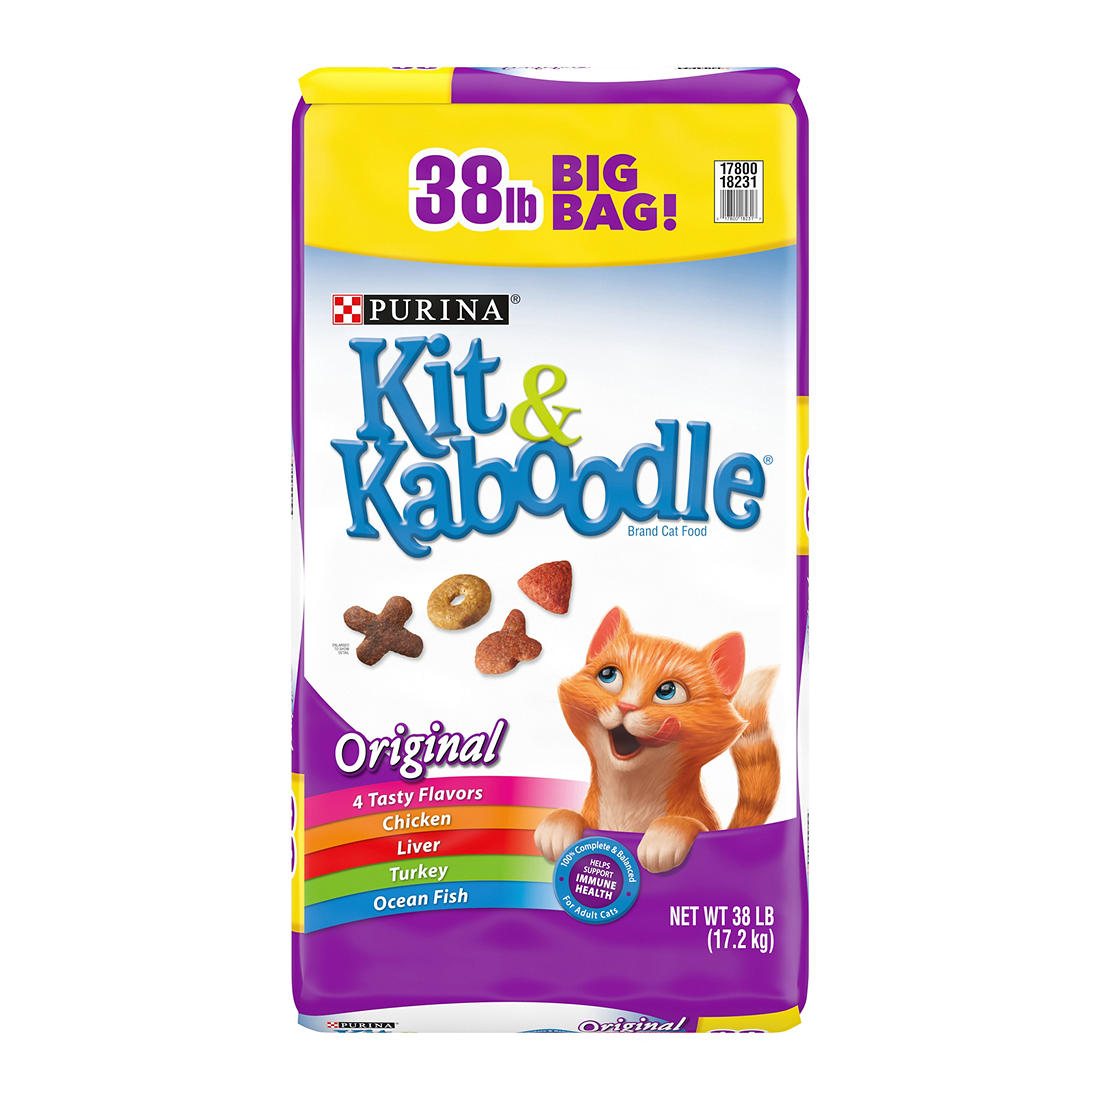 Purina Kit & Kaboodle Original Cat Food, 38 lbs.